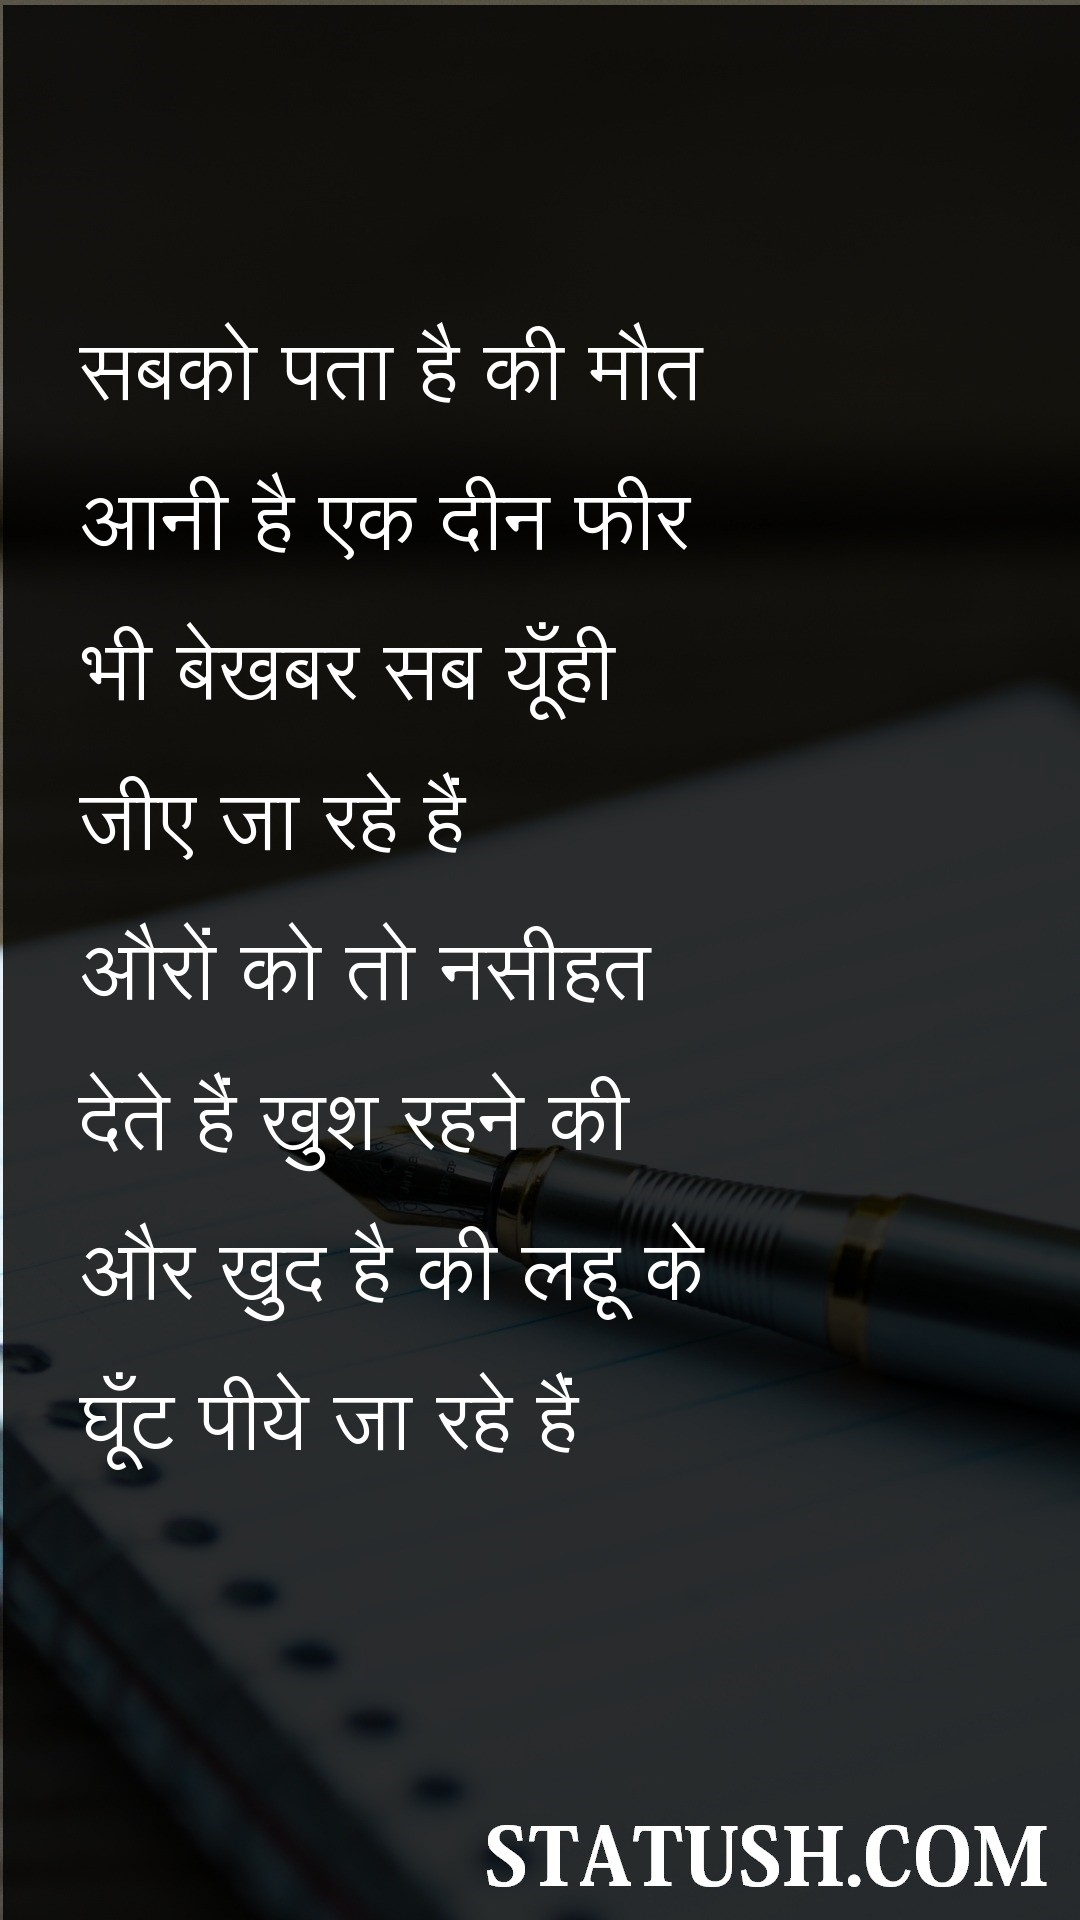 Hindi Shayri on Nasihat